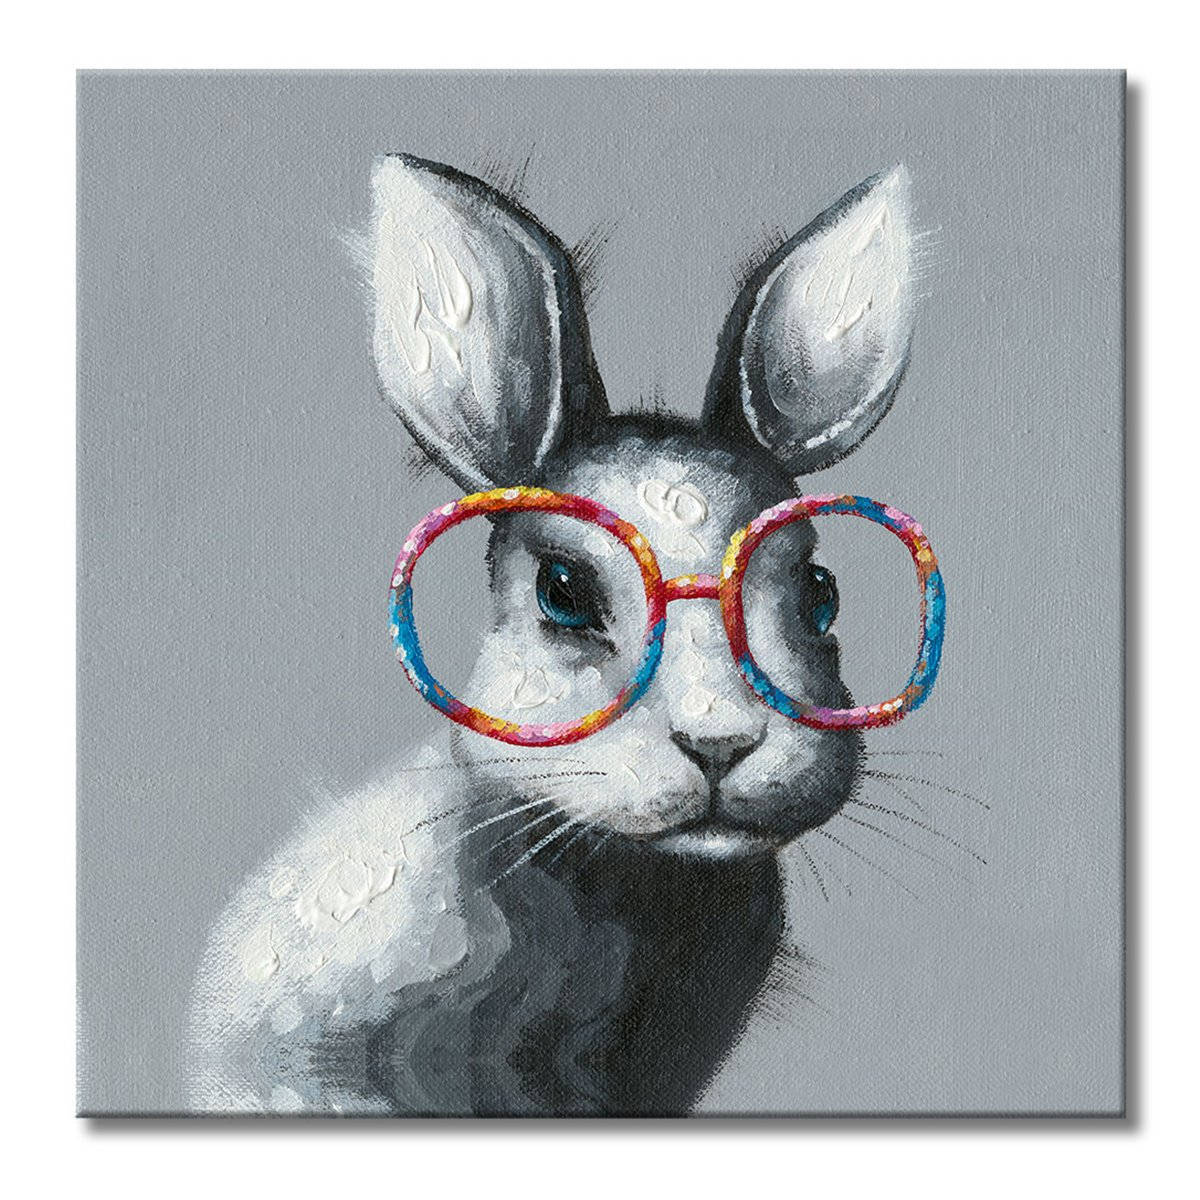 FLY SPRAY 1 Panel Framed 100% Hand Painted Oil Paintings Canvas Wall Art Rabbit with Glasses Bunny Animal Modern Abstract Artwork Painting for Living Room Bedroom Office Home Decoration